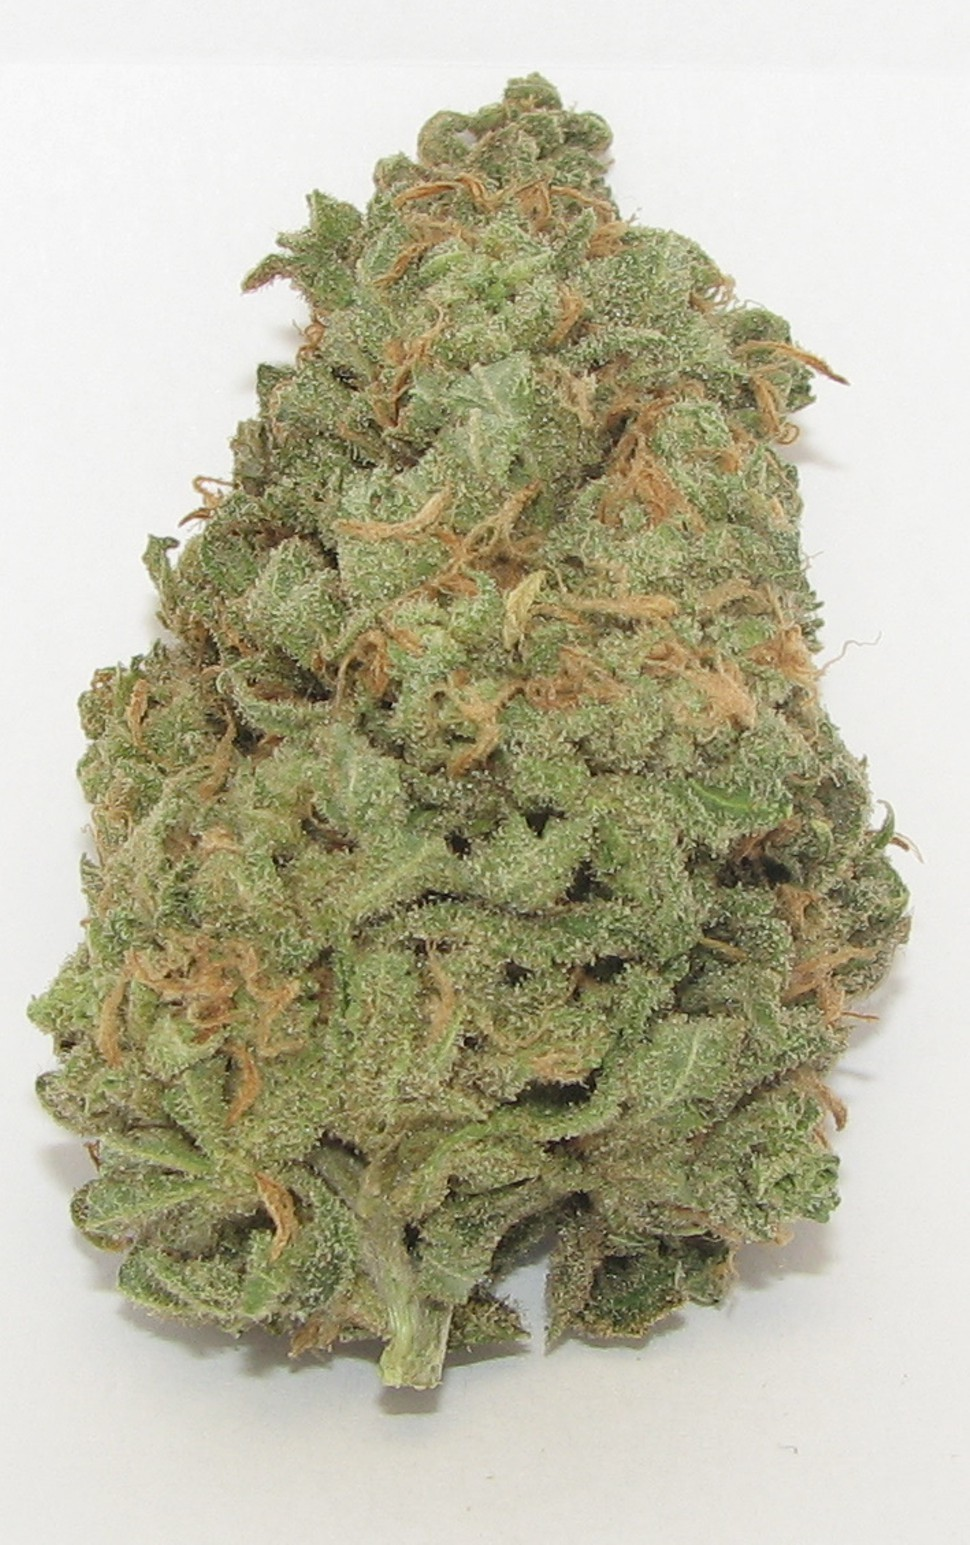 SF dispensaries did an estimated $41 million in annual sales of medical cannabis, like this Blue Dream from Shambhala